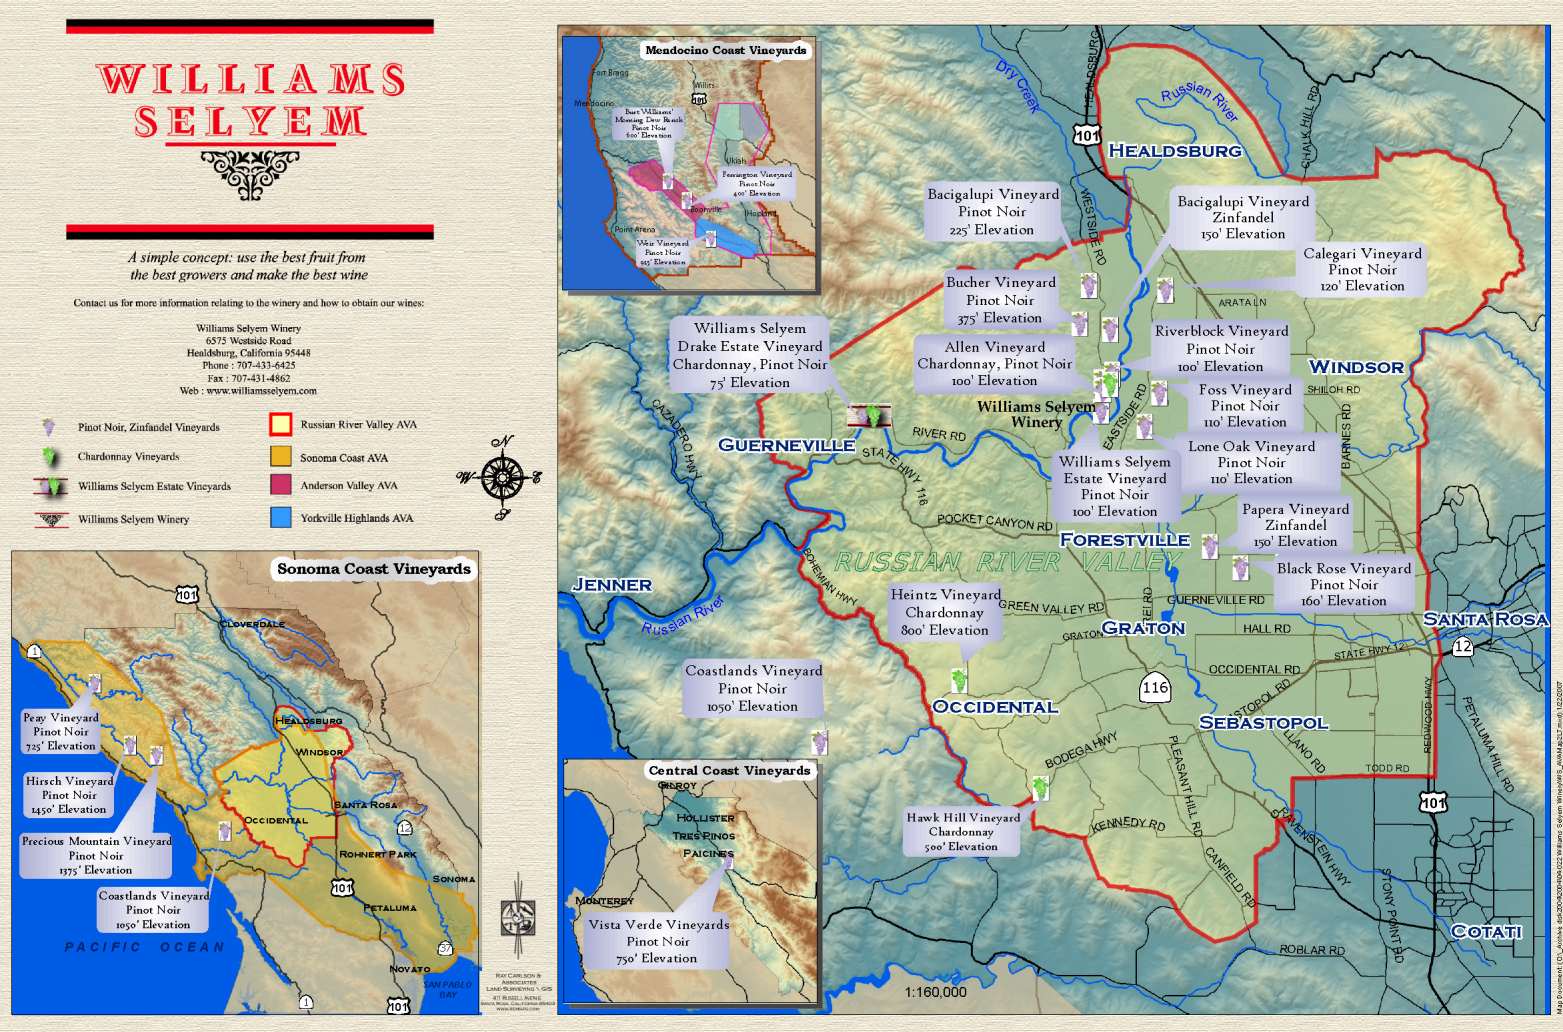 Williams Selyem Vineyard Map